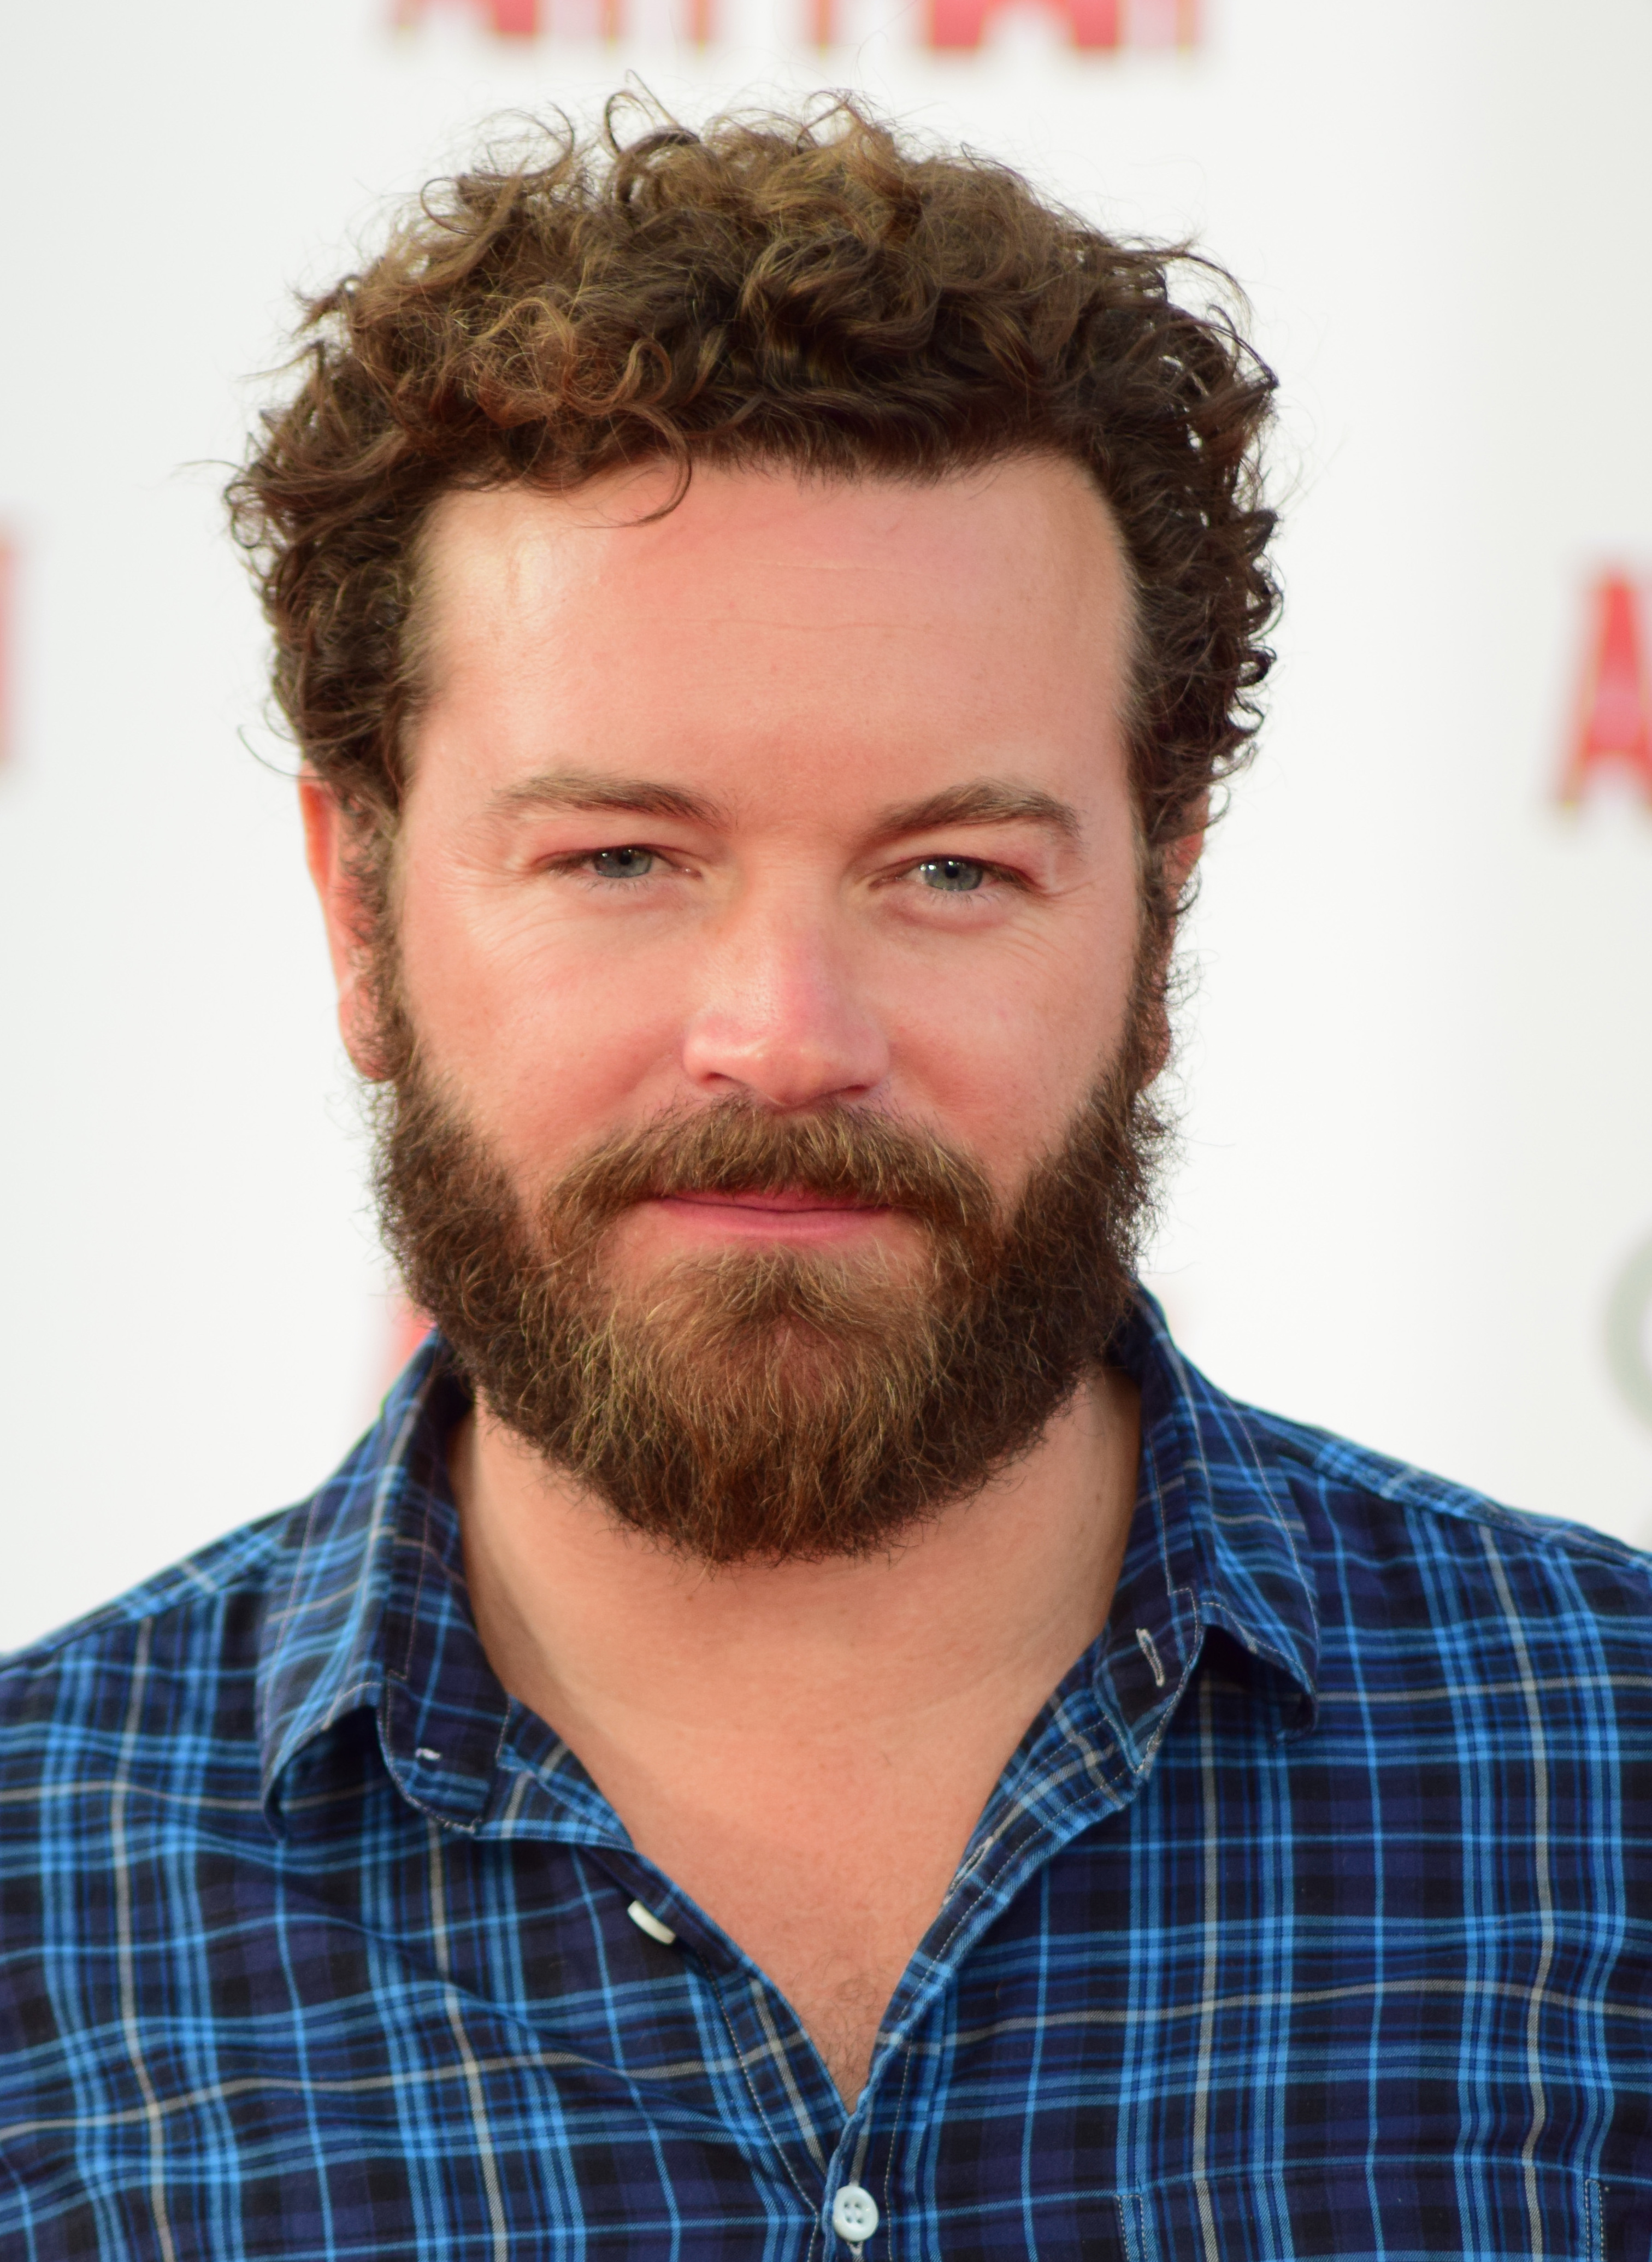 The 42-year old son of father Peter Masterson and mother Carol Masterson Danny Masterson in 2018 photo. Danny Masterson earned a  million dollar salary - leaving the net worth at 16 million in 2018